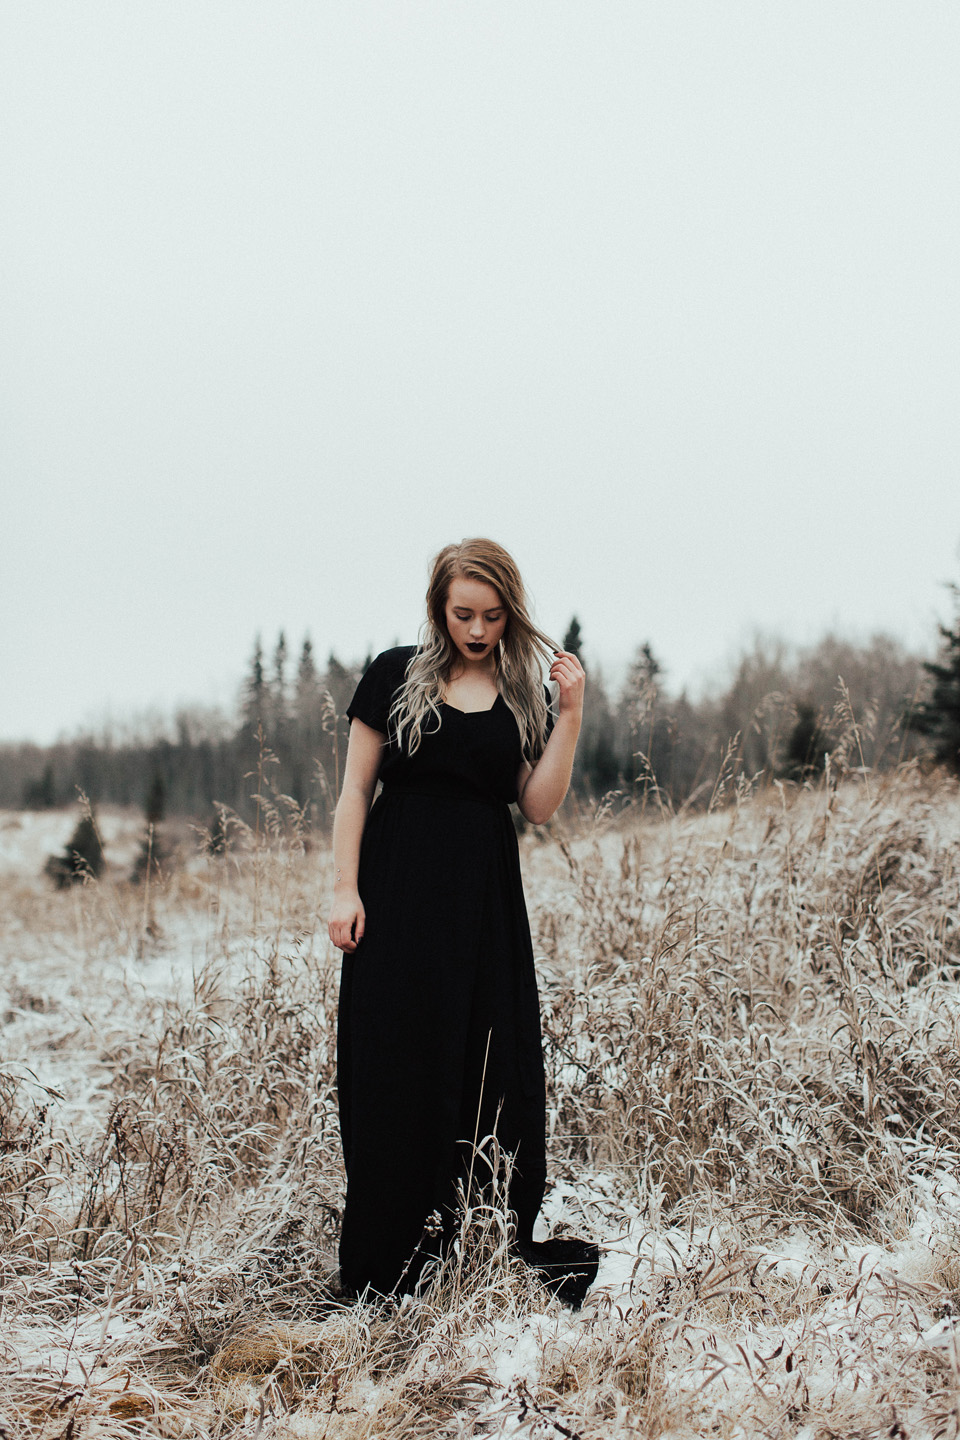 Moody Winter Bridals Edmonton Portrait and Wedding Photographer - Michelle Larmand Photography -044